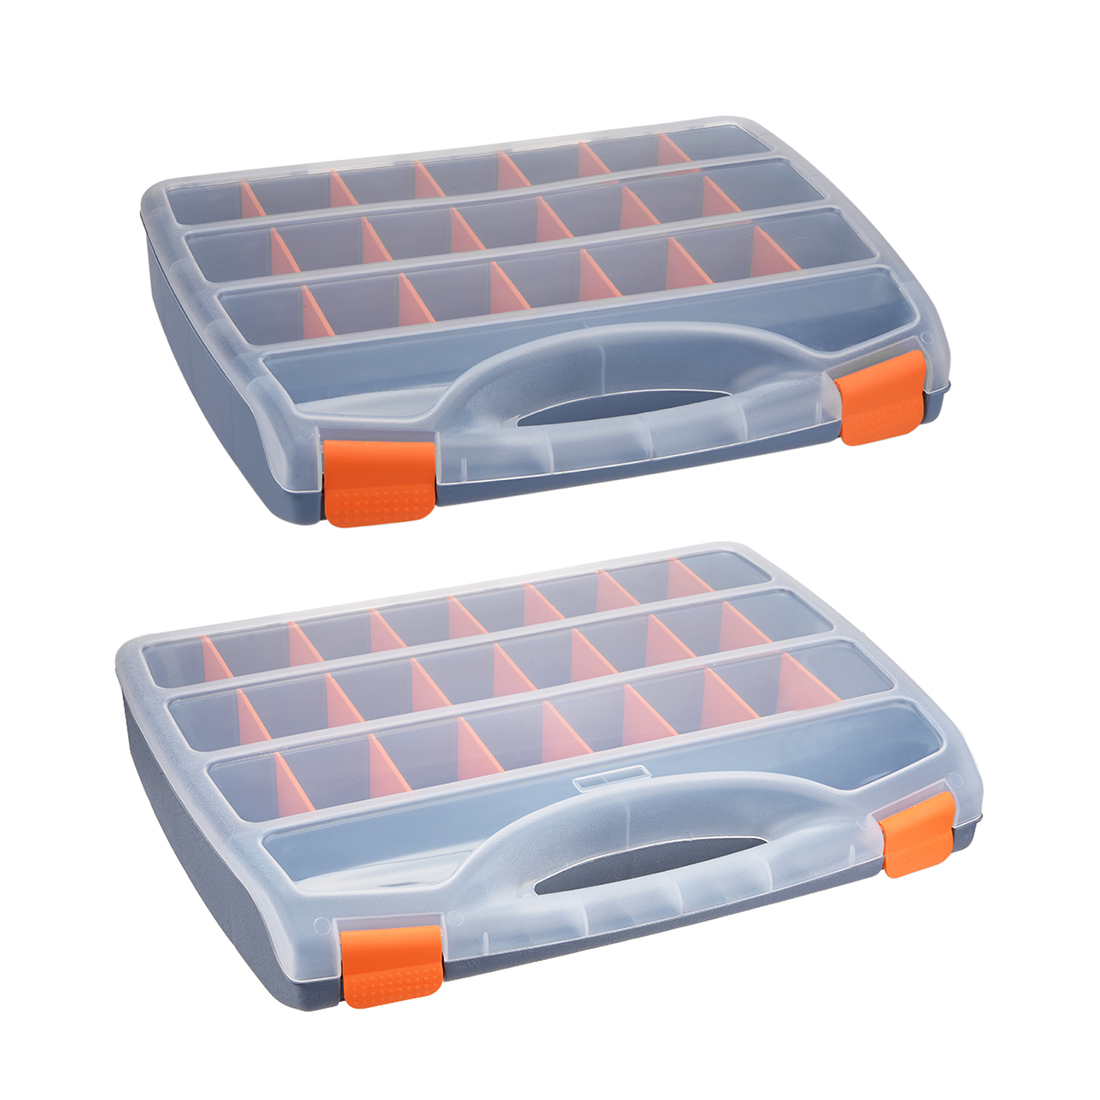 Uxcell 1Pcs Plastic Tool Box With Tray And Organizers Includes Removable 4-32 Small Parts Boxes 12/13/15/18-inch ABS